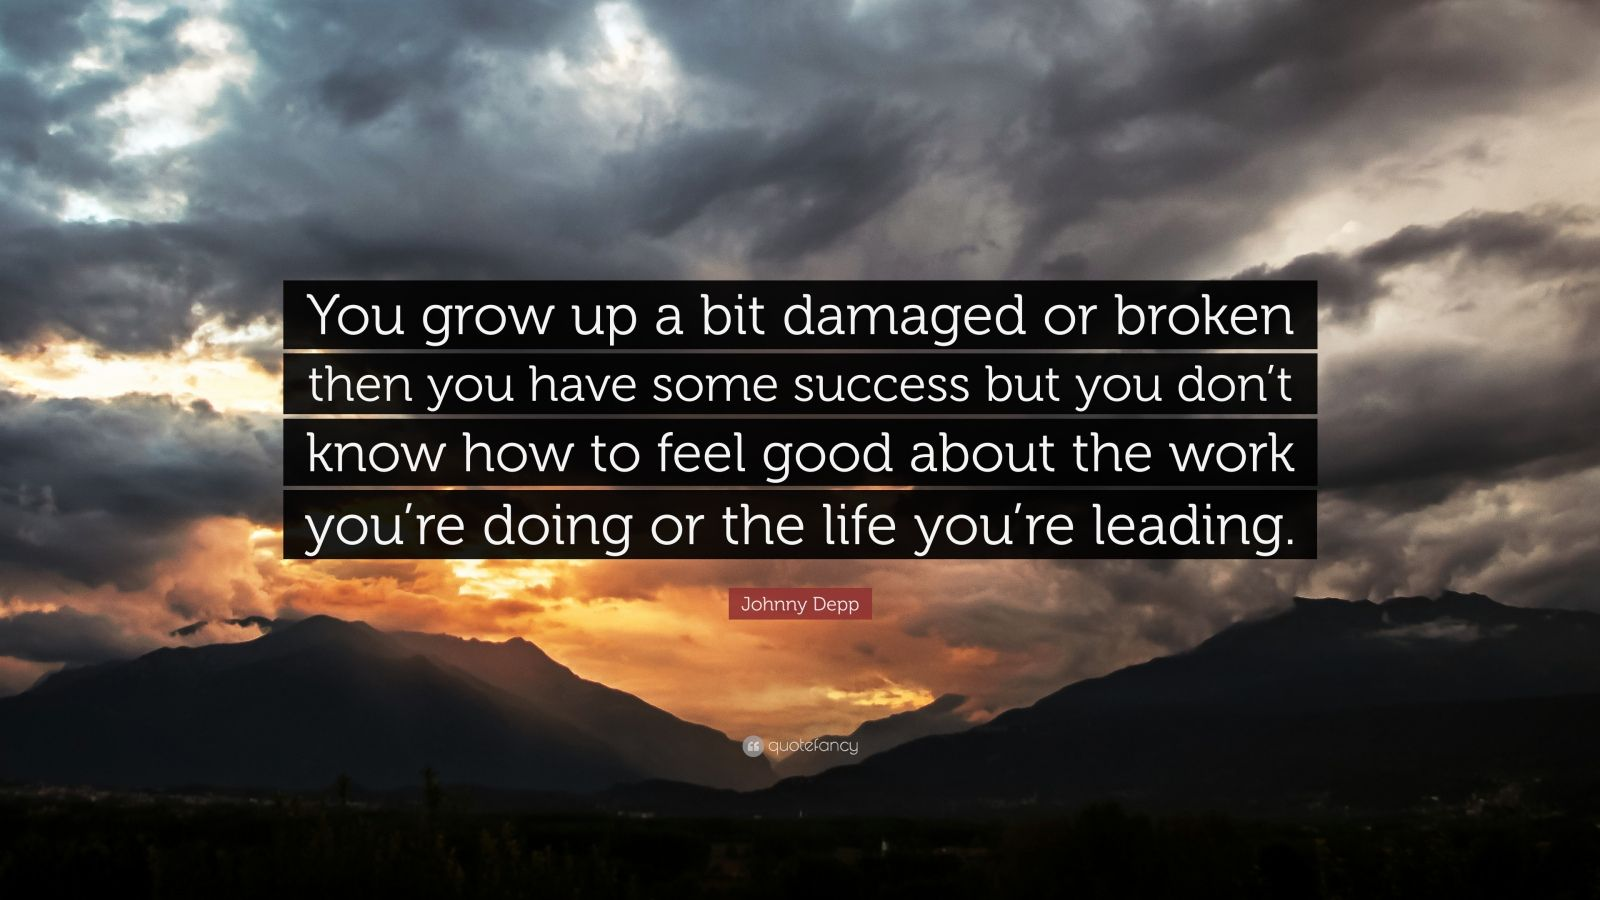 """Johnny Depp Quote: """"You grow up a bit damaged or broken then you have some success but you don't know how to feel good about the work you're doing or the life you're leading."""""""